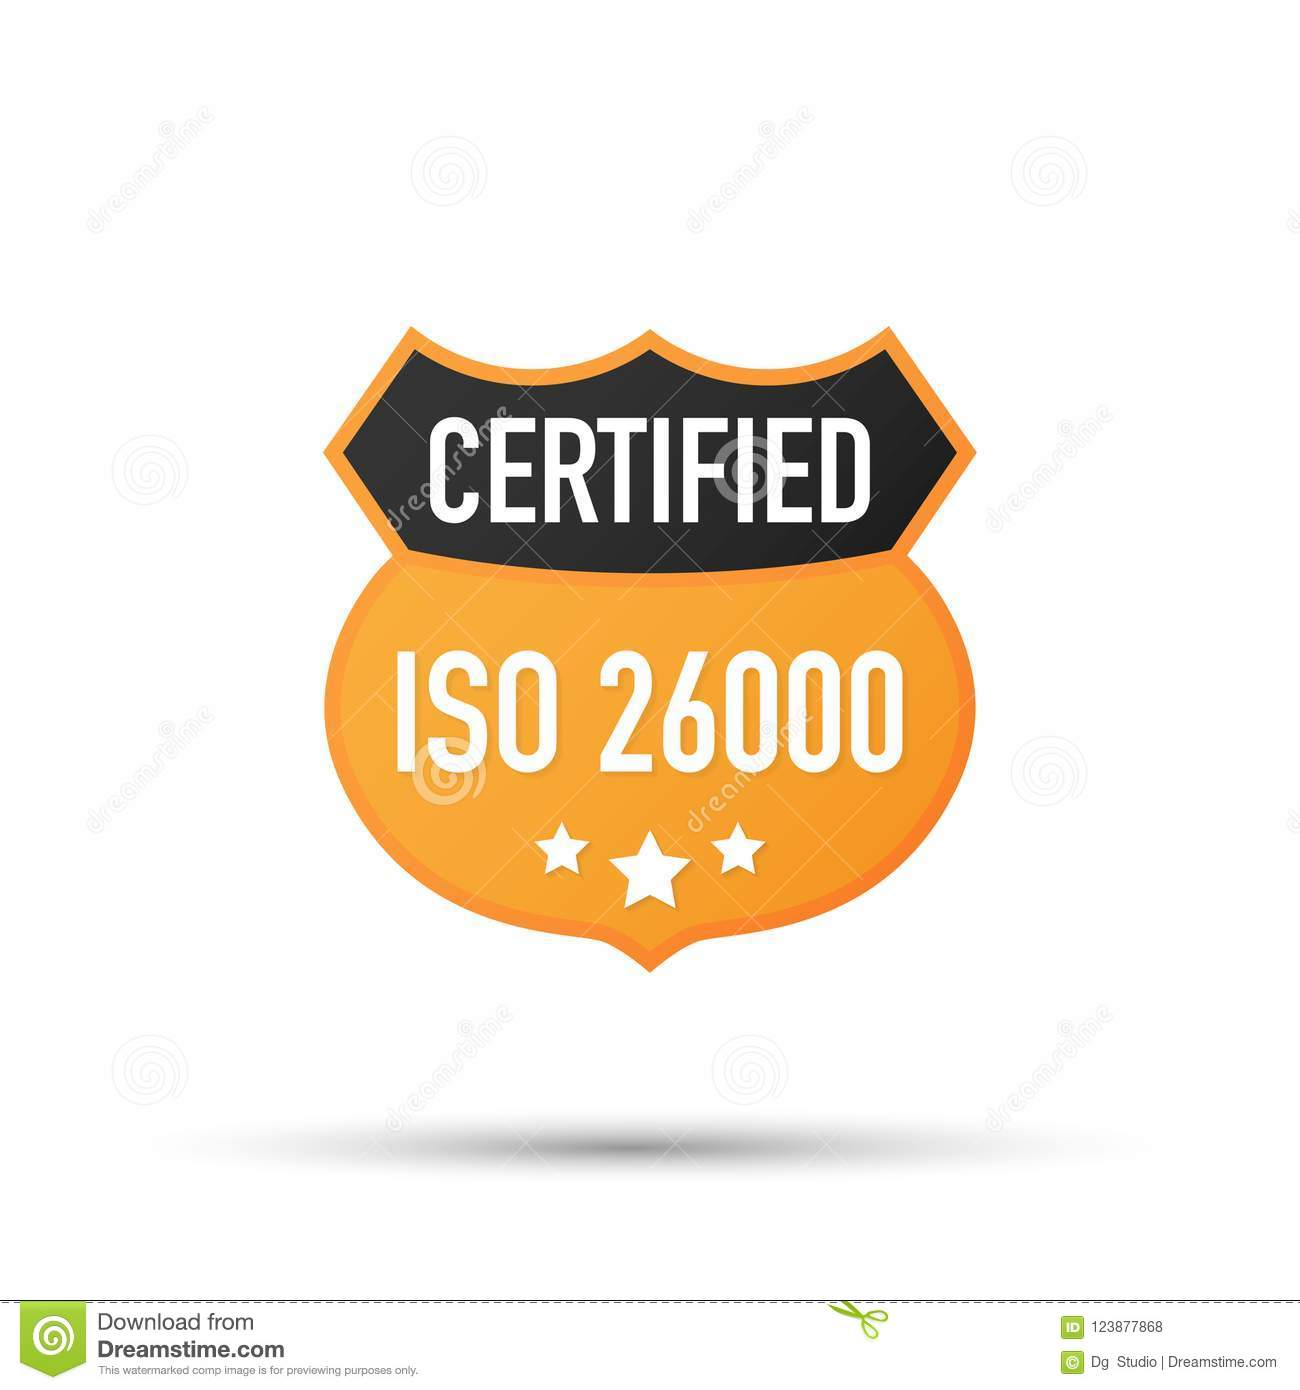 ISO 26000 Certified Badge Icon Certification Stamp Flat Design Vector Illustration